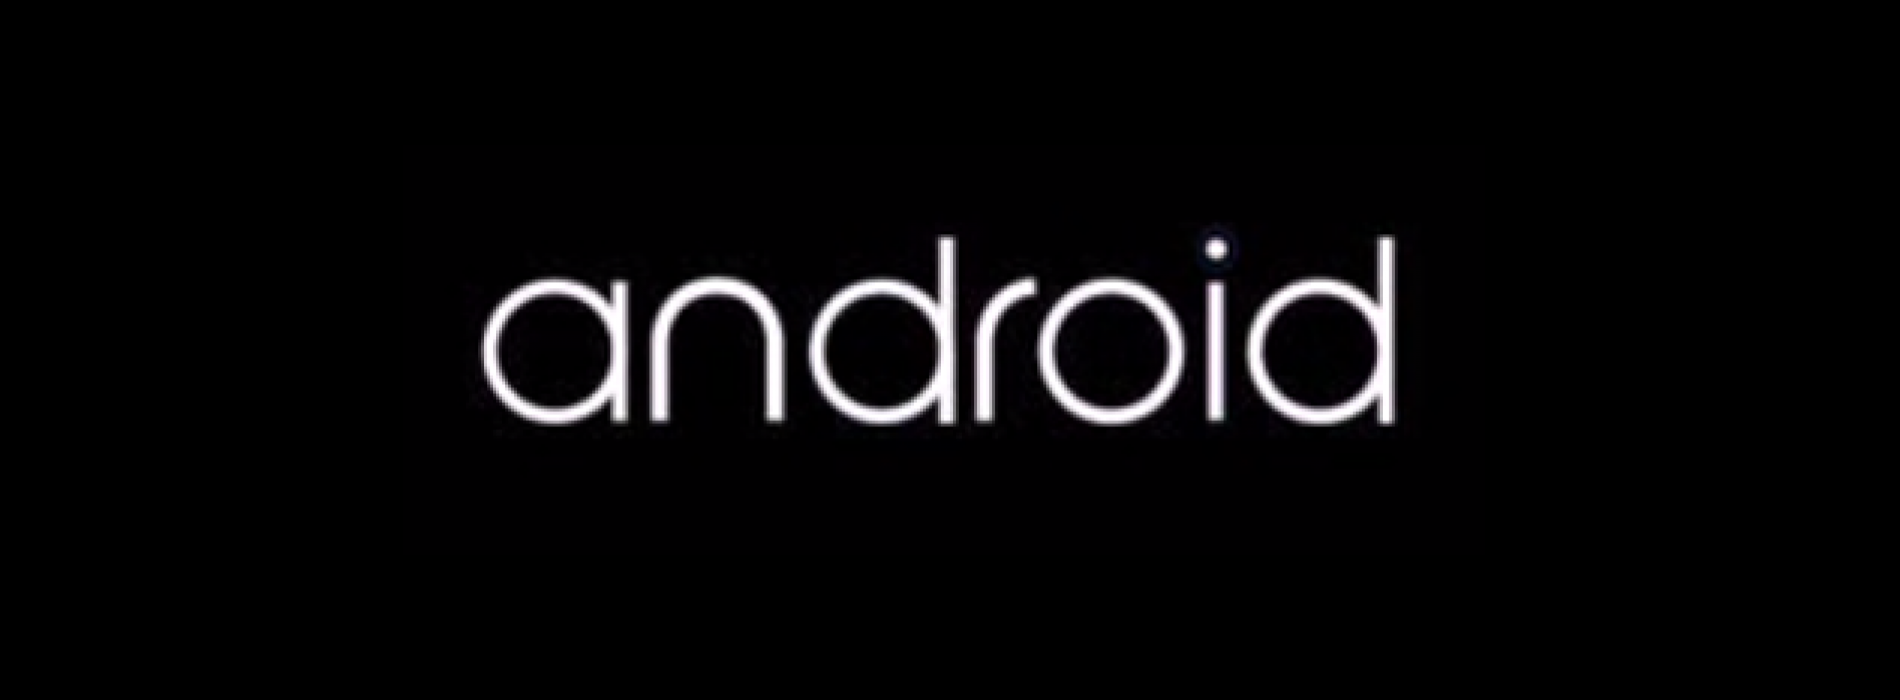 Google might have quietly changed the Android logo